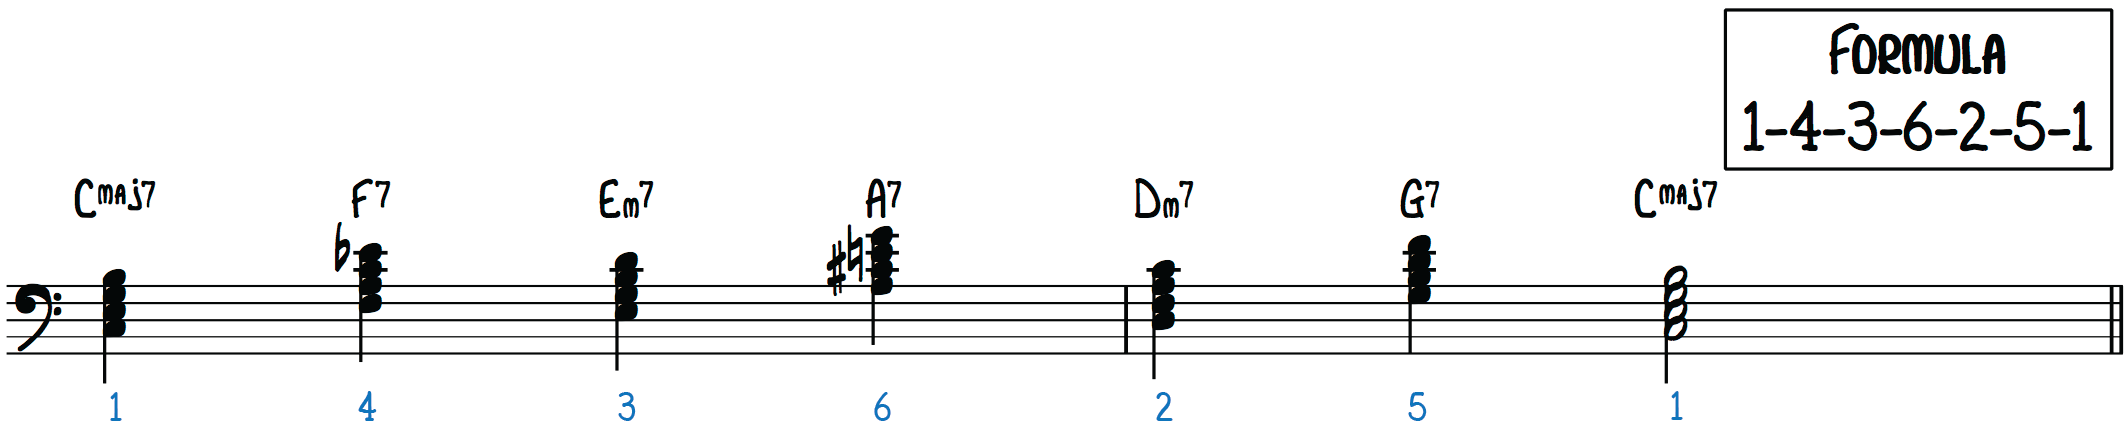 Extended Turnaround Chord Progression (1-4-3-6-2-5-1) They Can't Take That Away from Me, Teach Me Tonight, The More I See You, O Christmas Tree, memorize jazz tunes